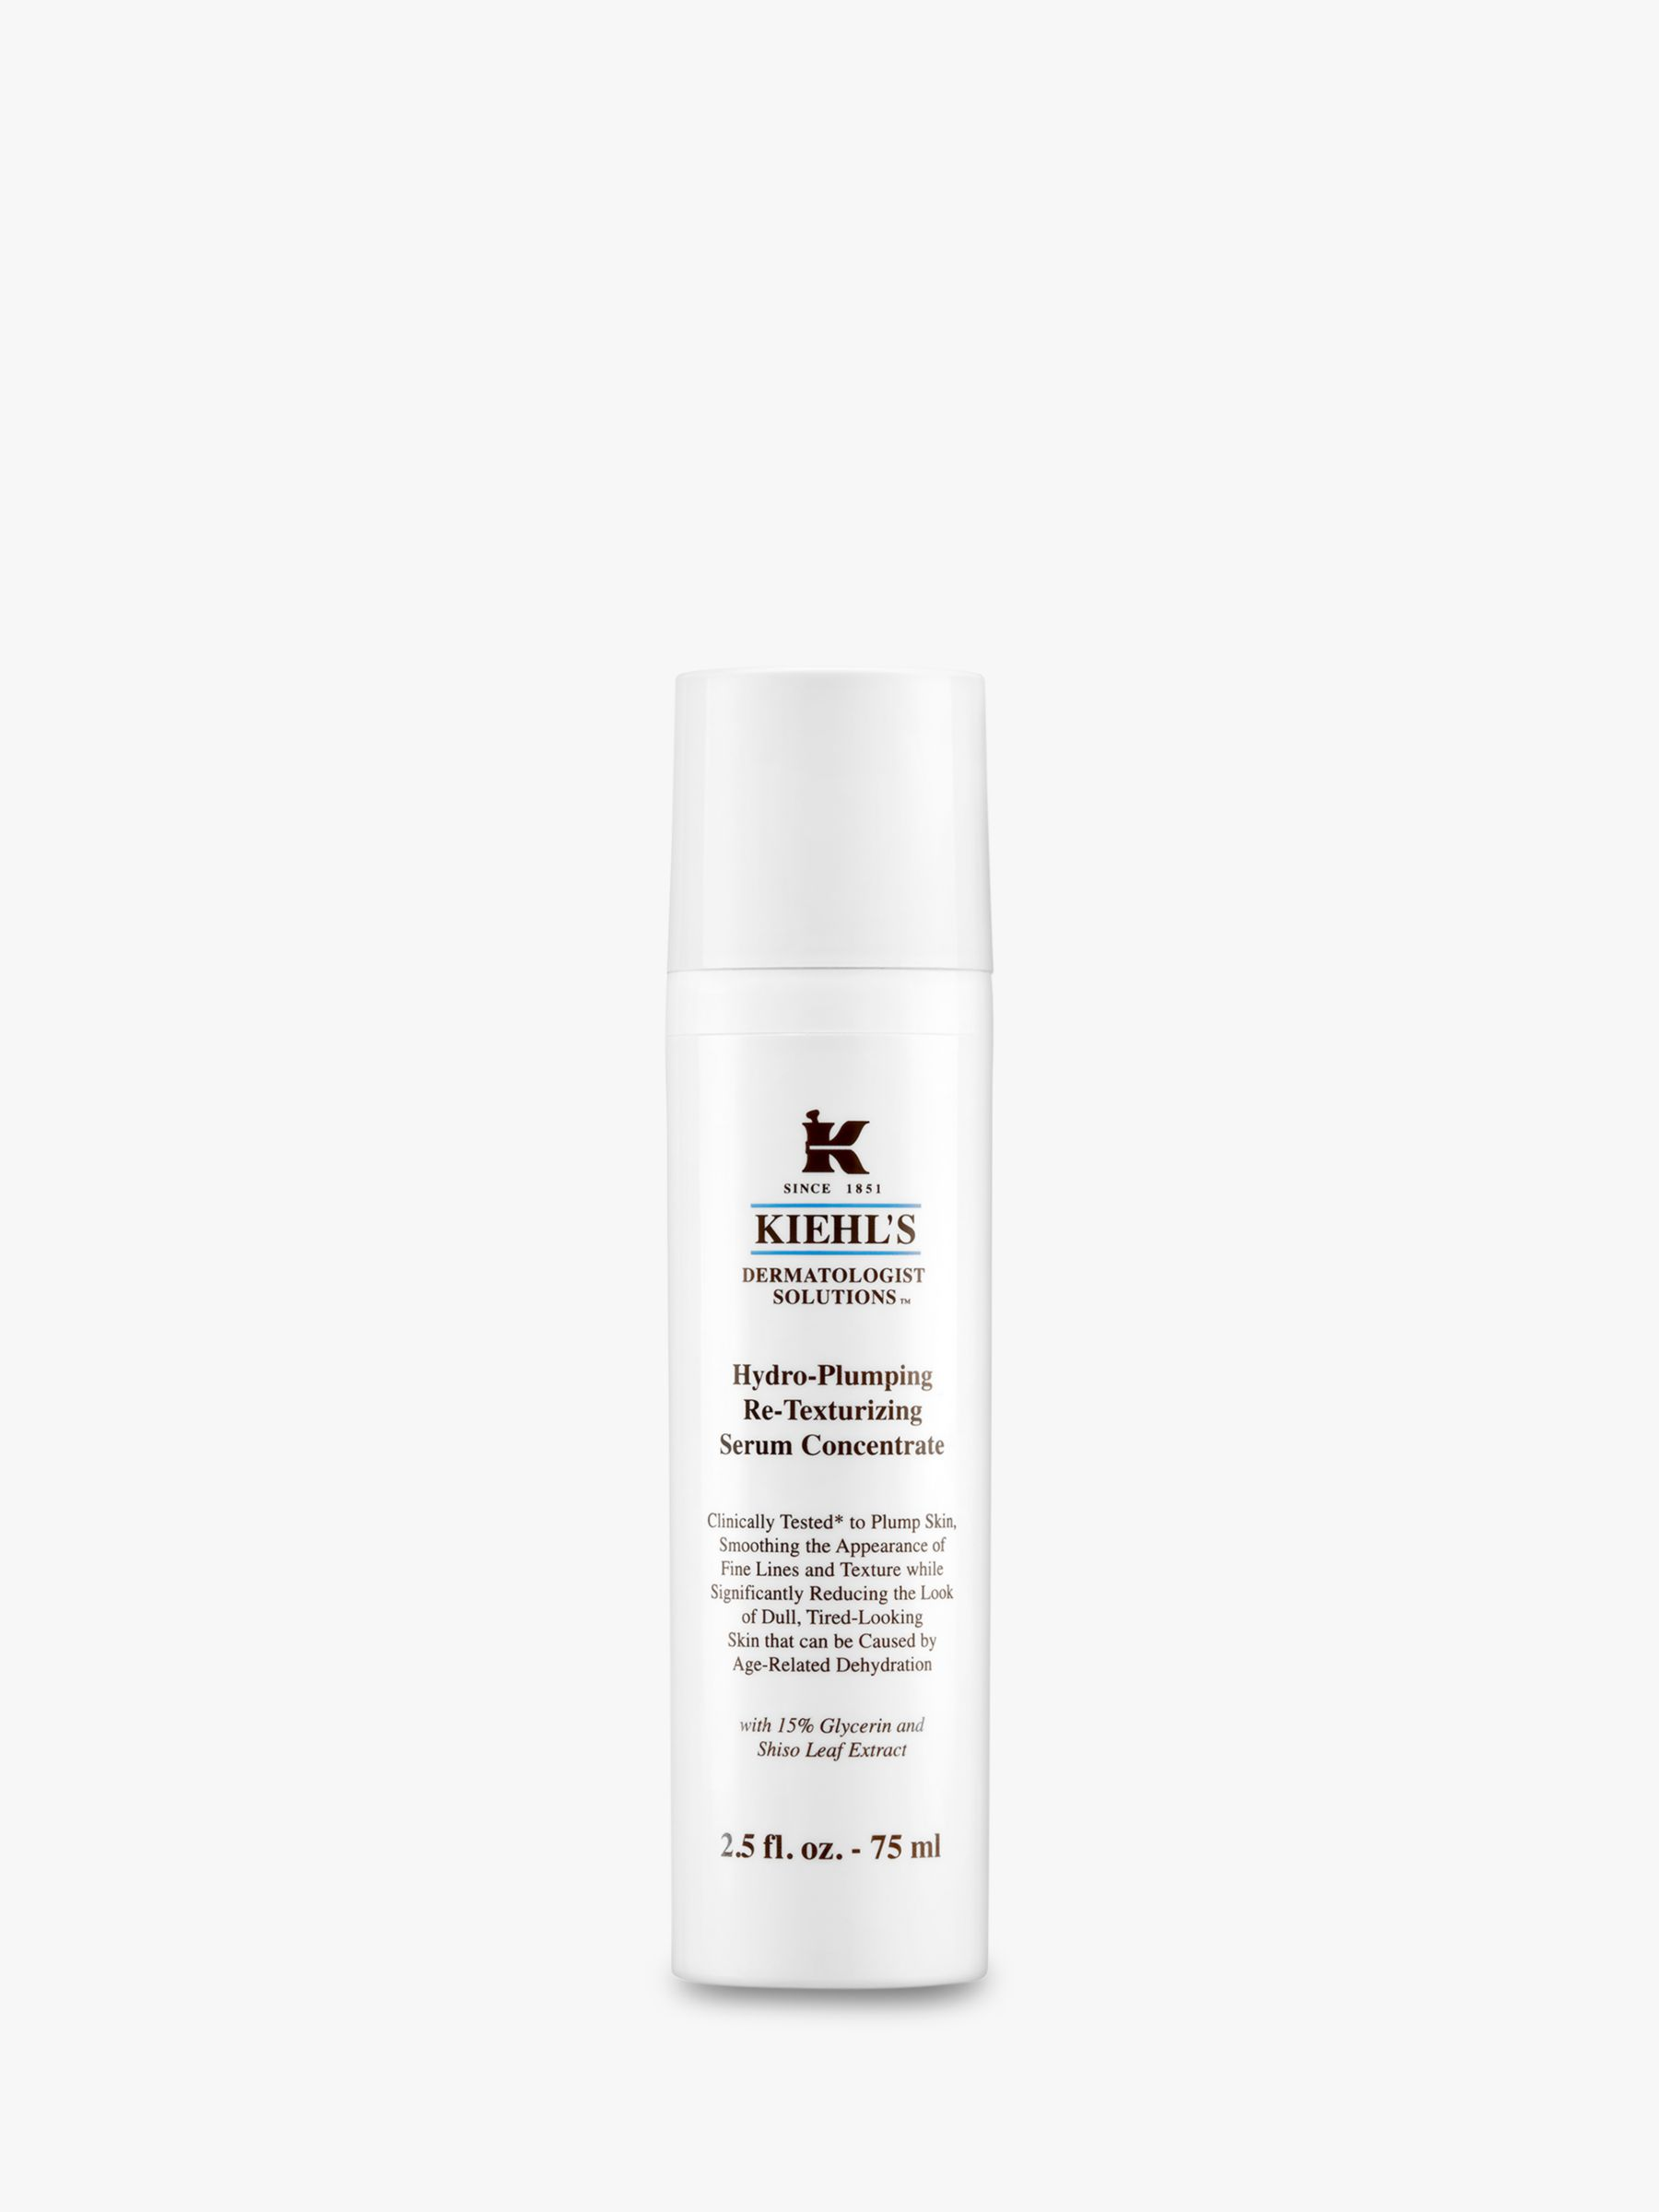 Kiehls Kiehl's Hydro Plumping Re-Texturising Serum Concentrate